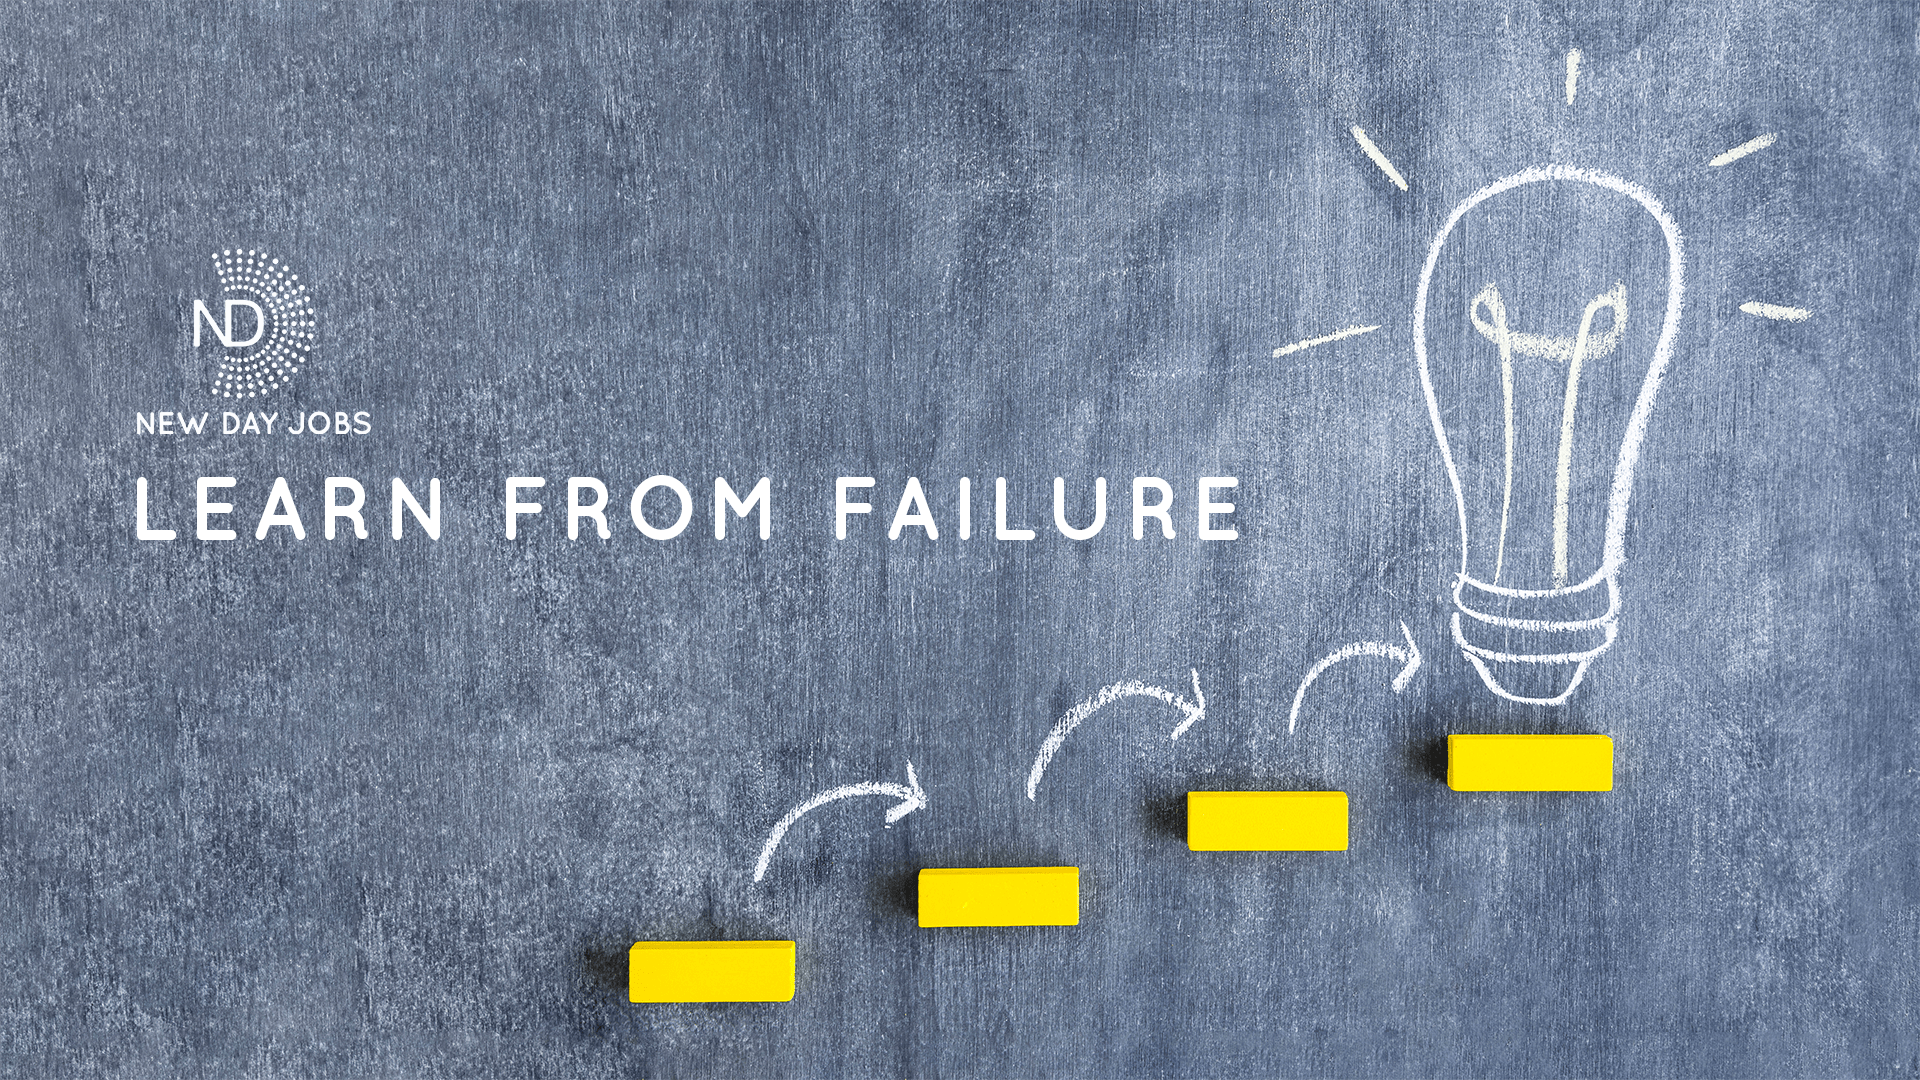 LEARN FROM FAILURE | Read more blogs at New Day Jobs